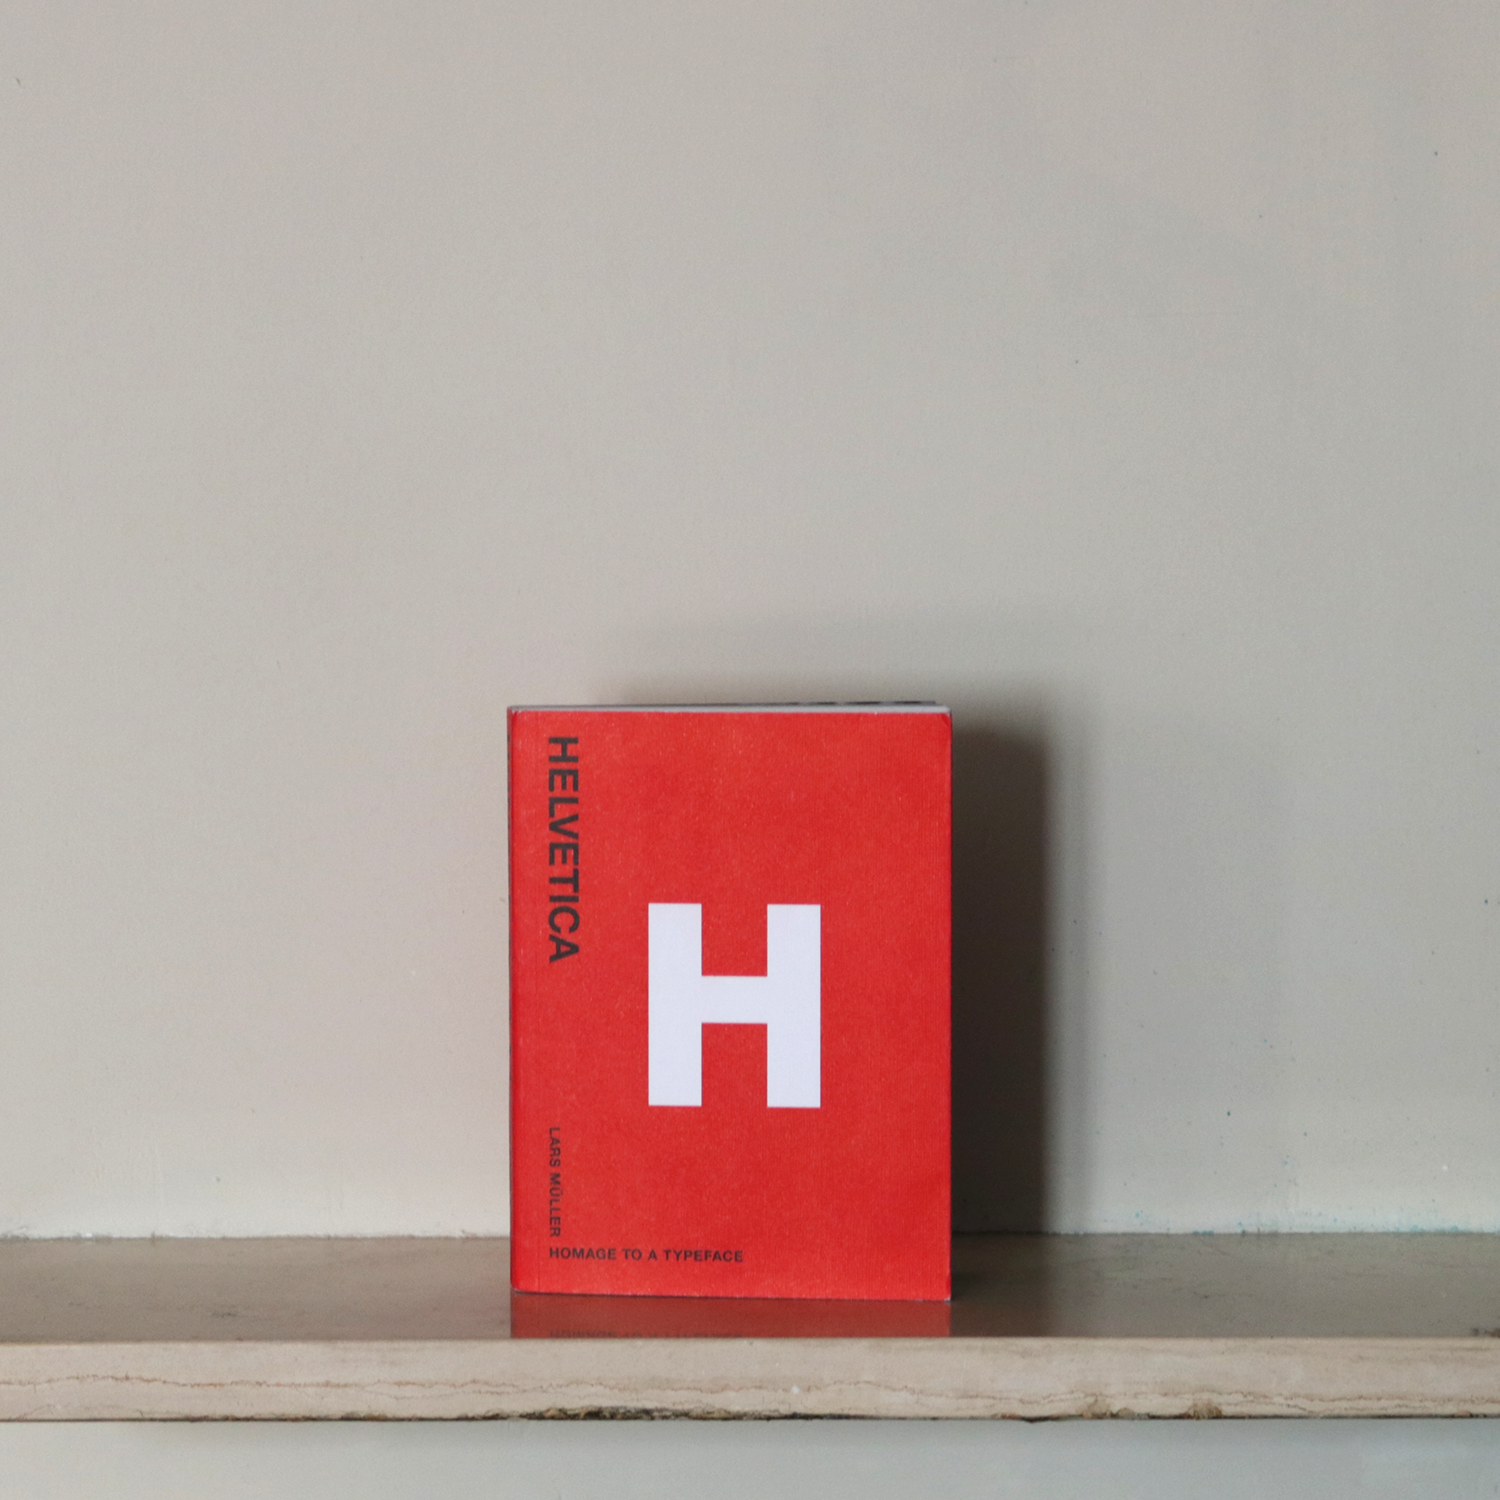 Helvetica, homage to a typeface